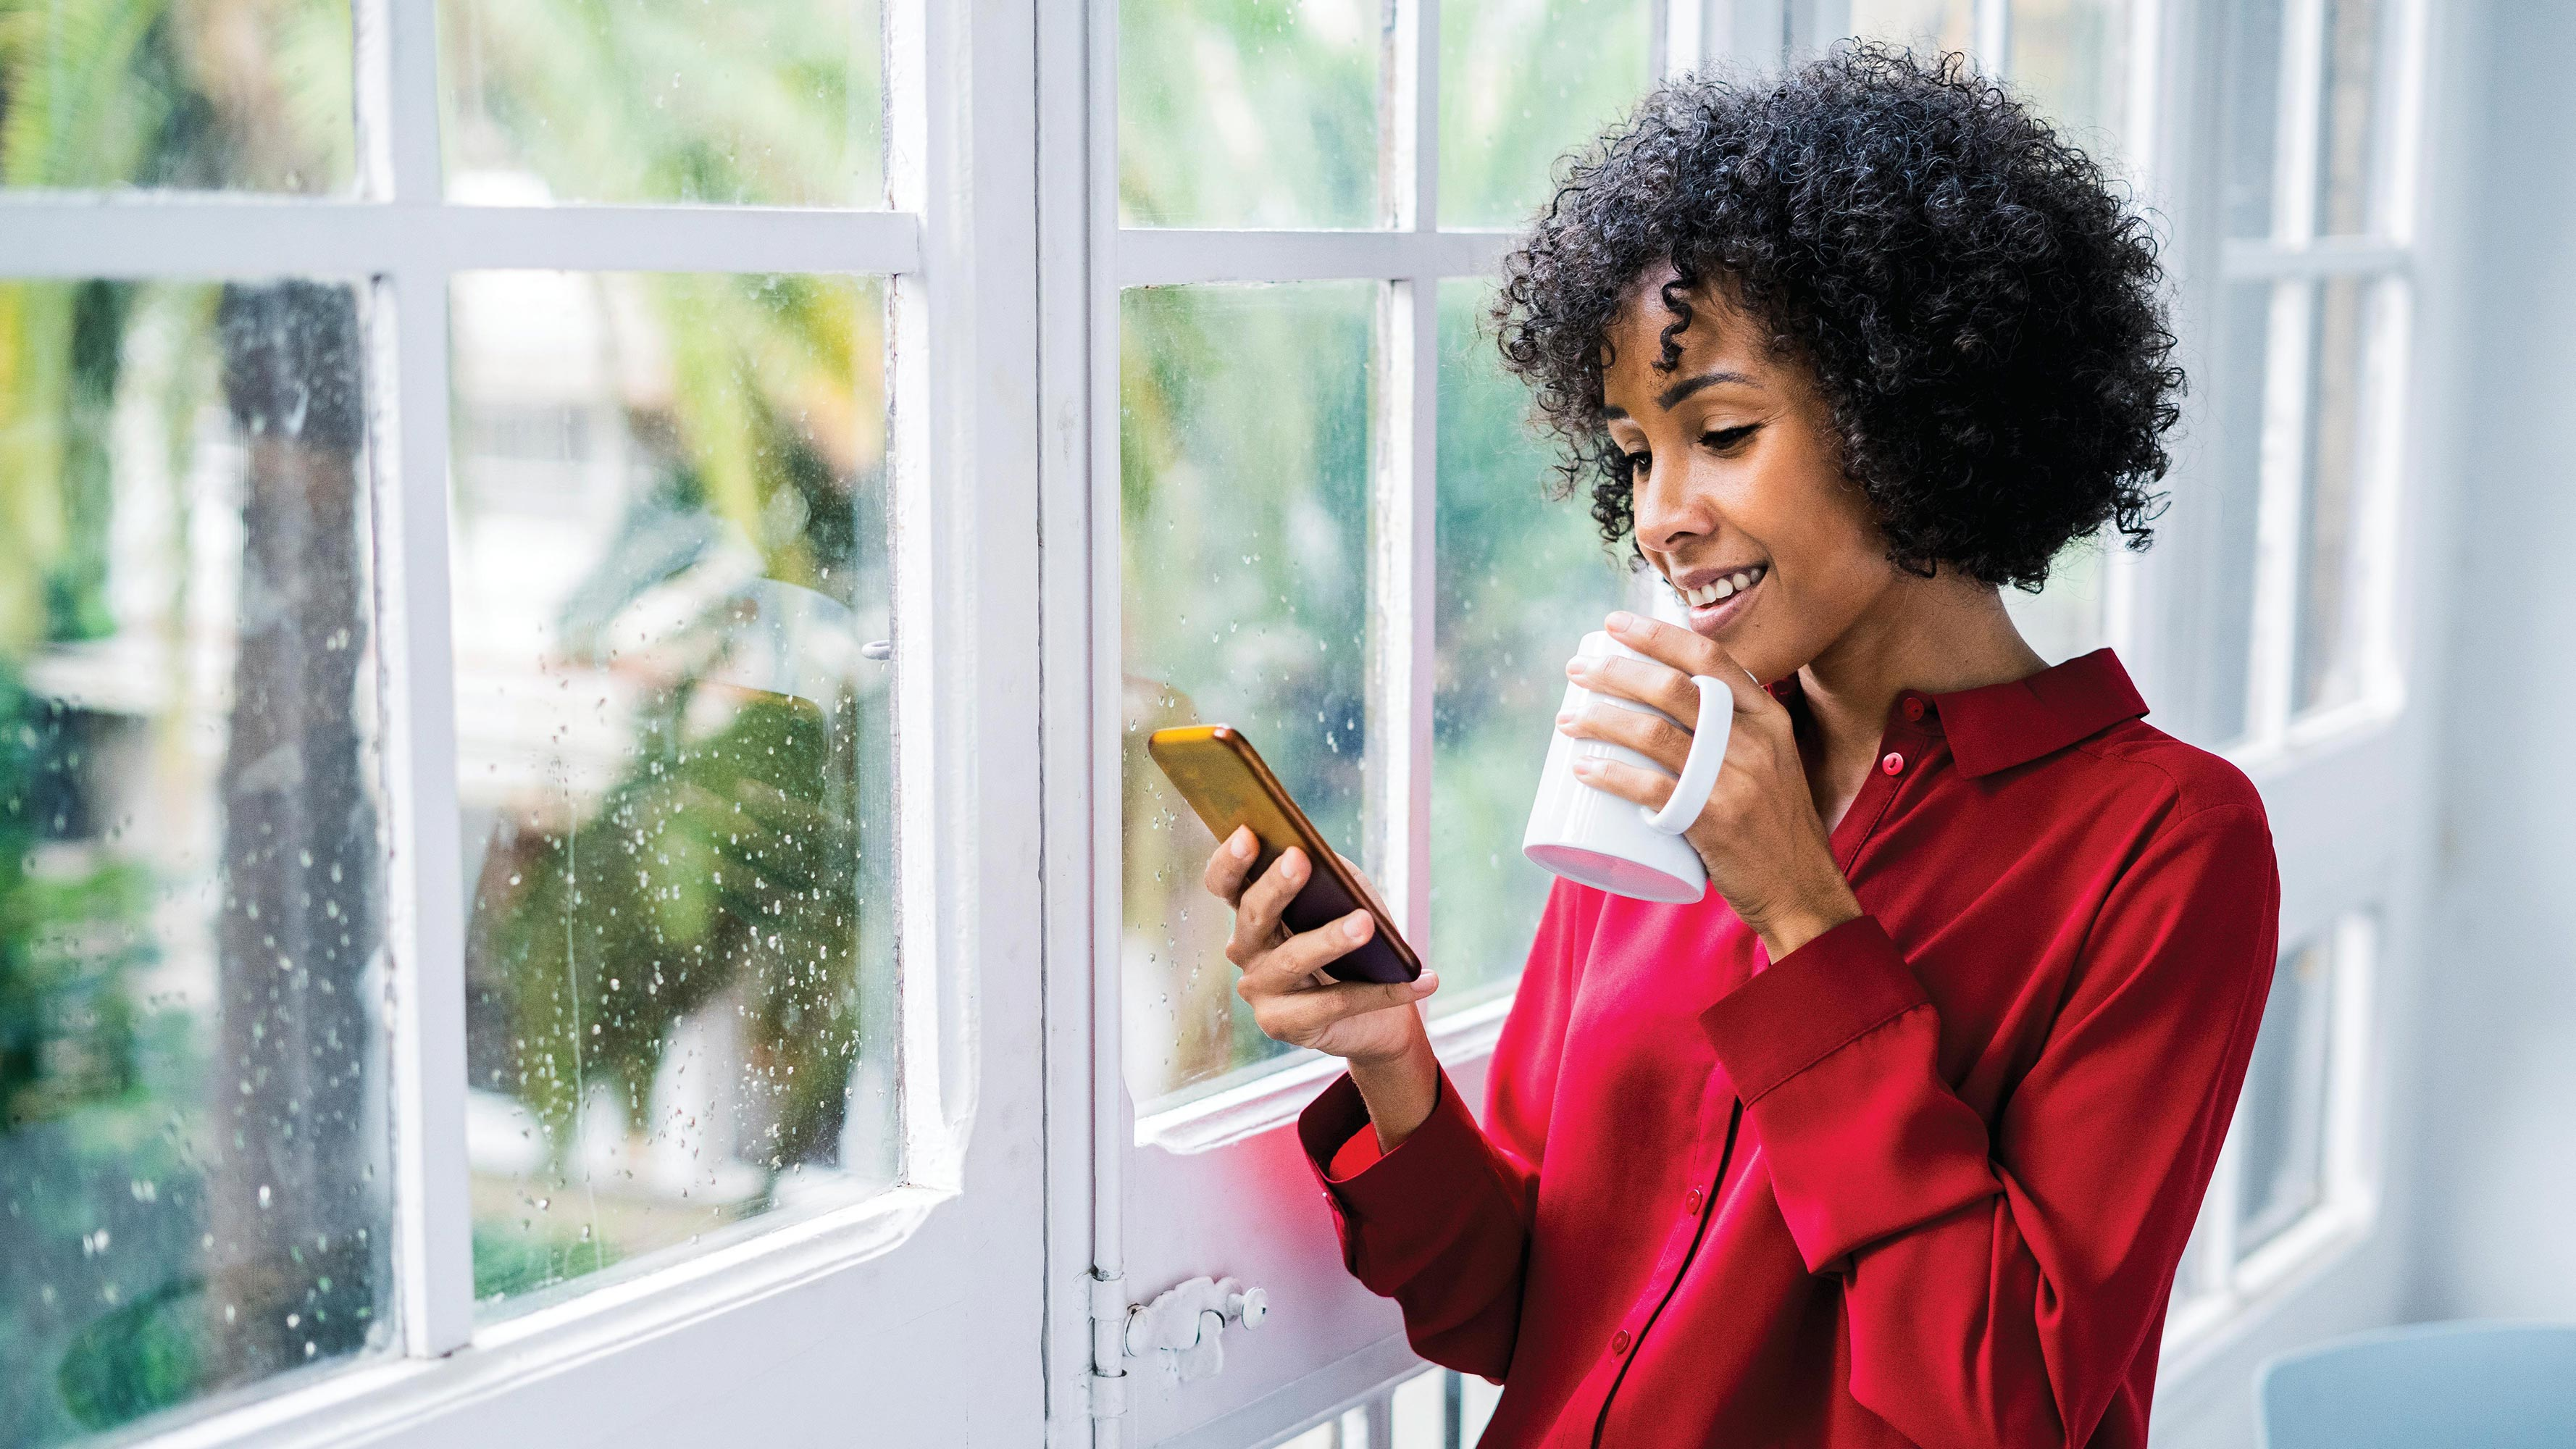 A young woman with curly hair, wearing a red button-down, collared shirt, stands by her window to drink coffee and scroll through her phone.